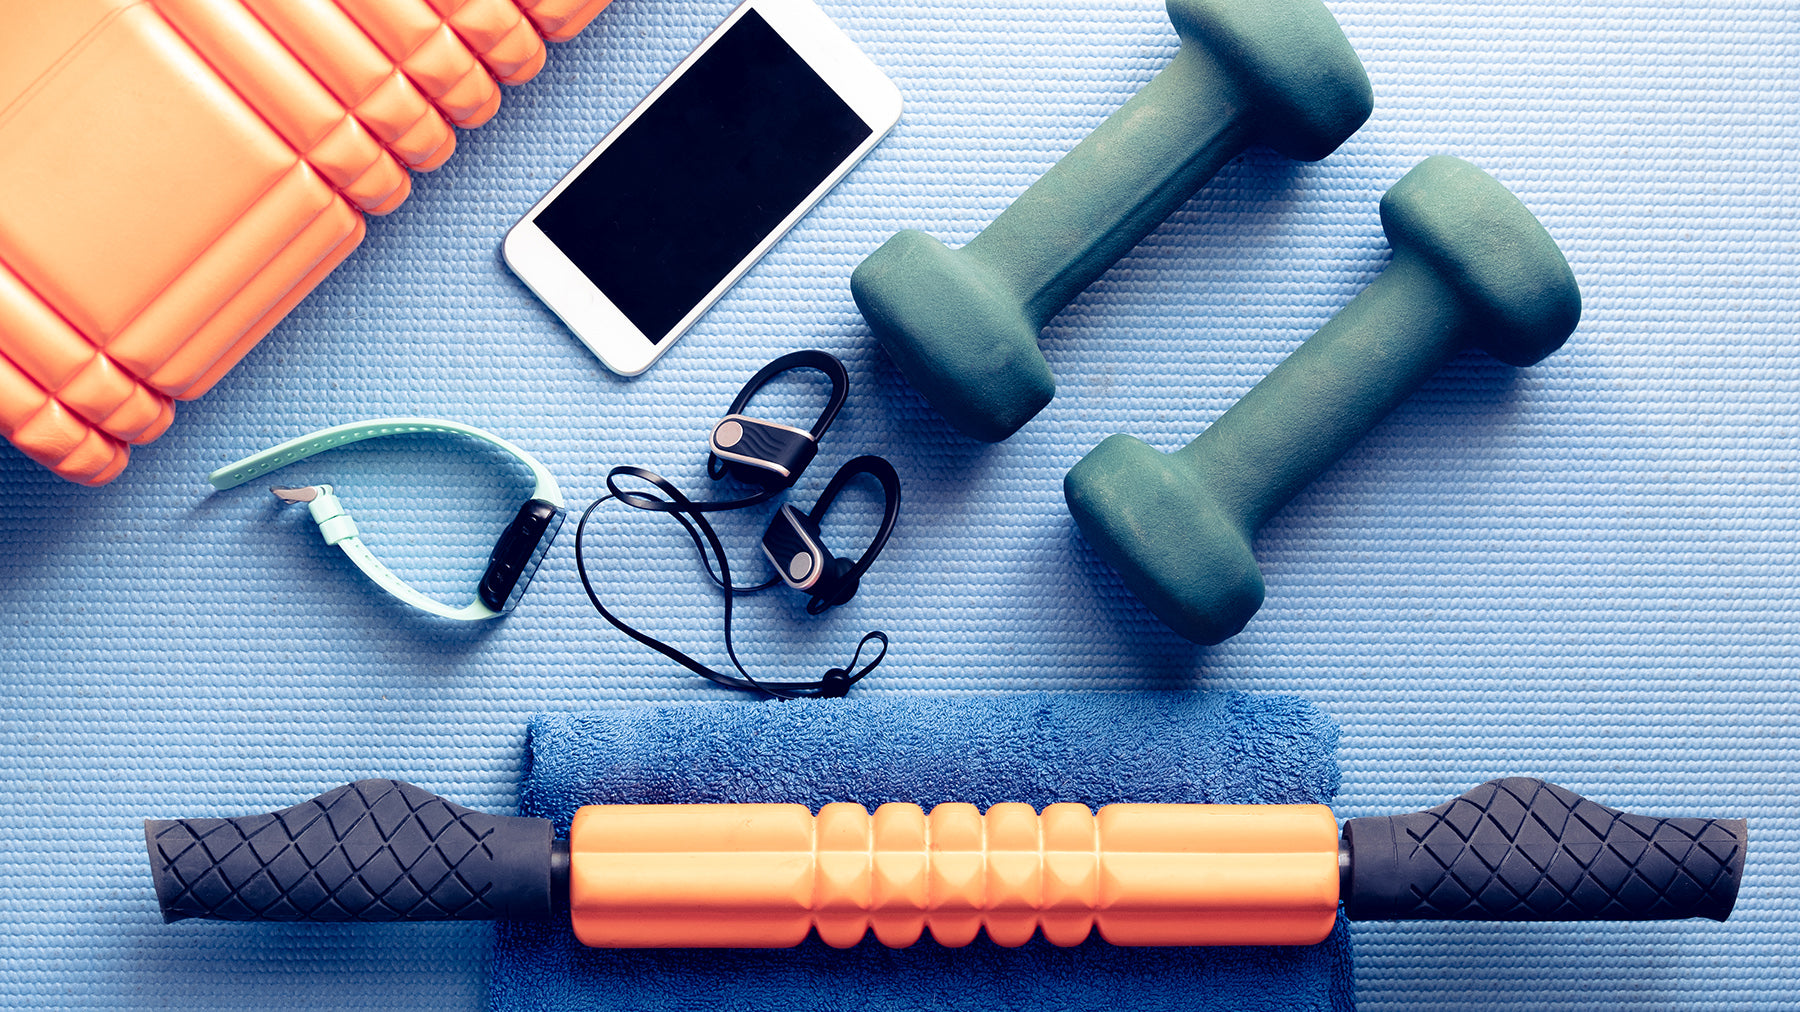 TIPS TO DECIDING THE BEST HOME FITNESS EQUIPMENT.